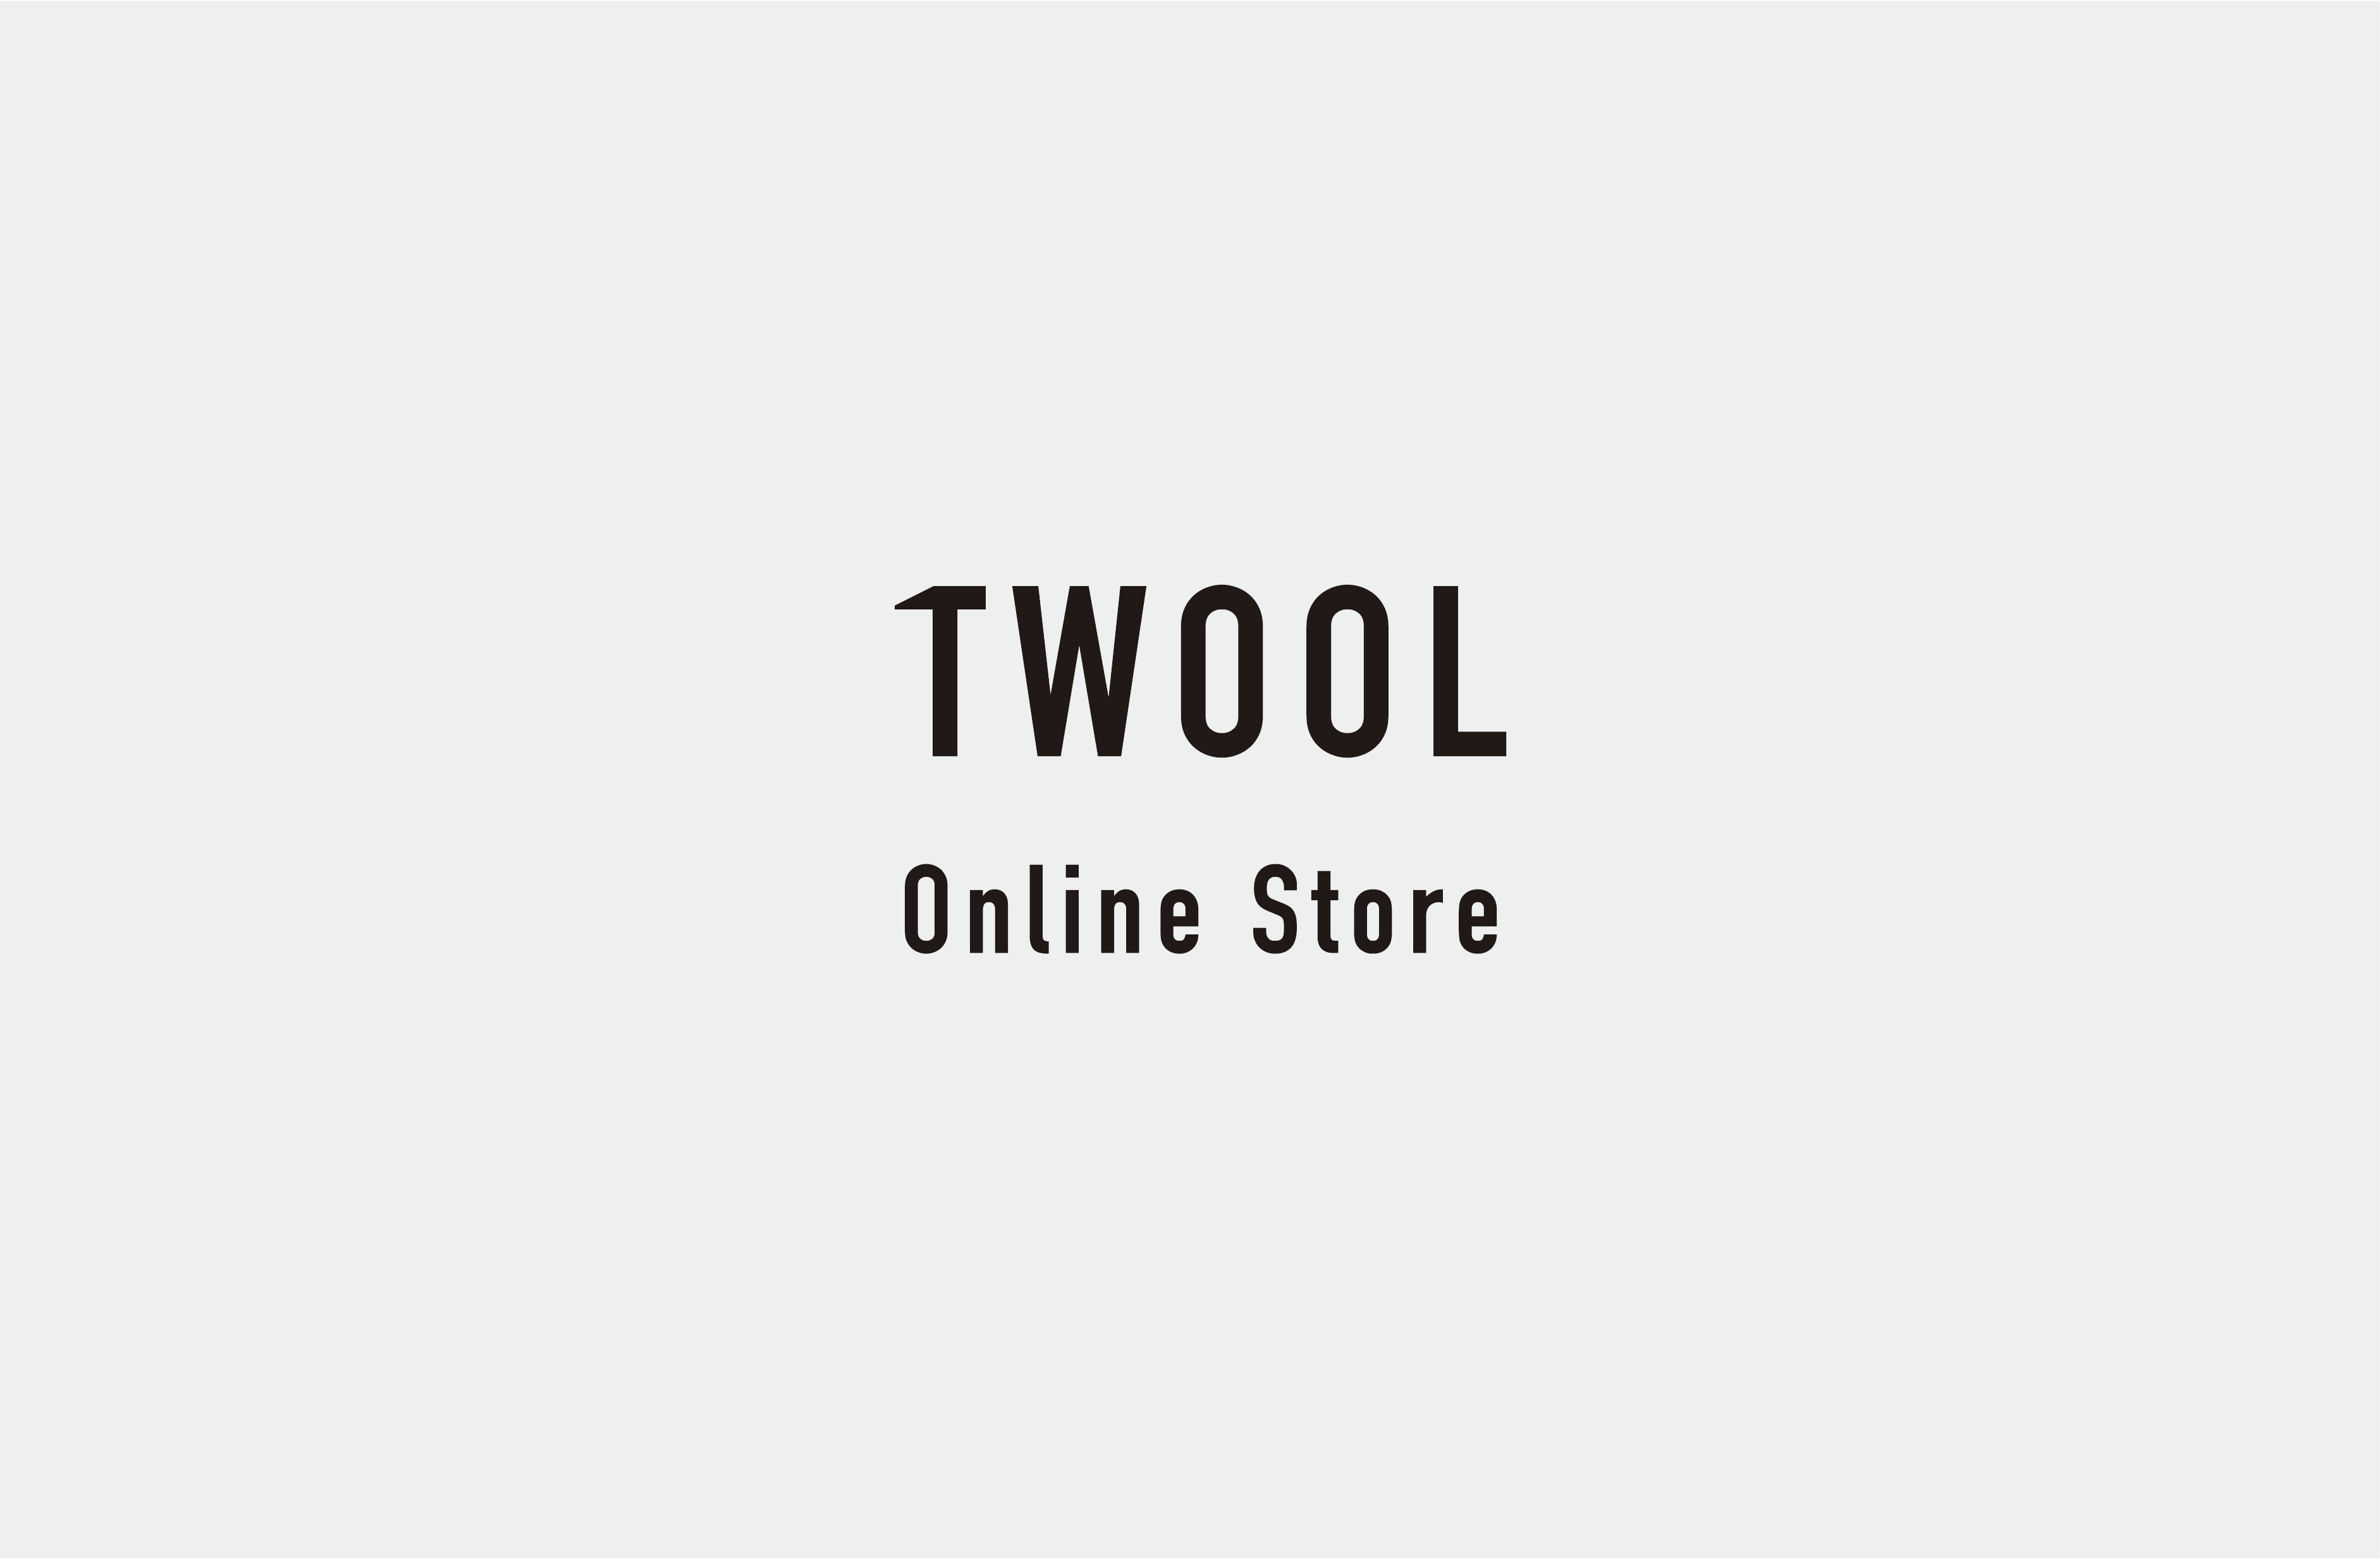 TWOOL ONLINE STORE